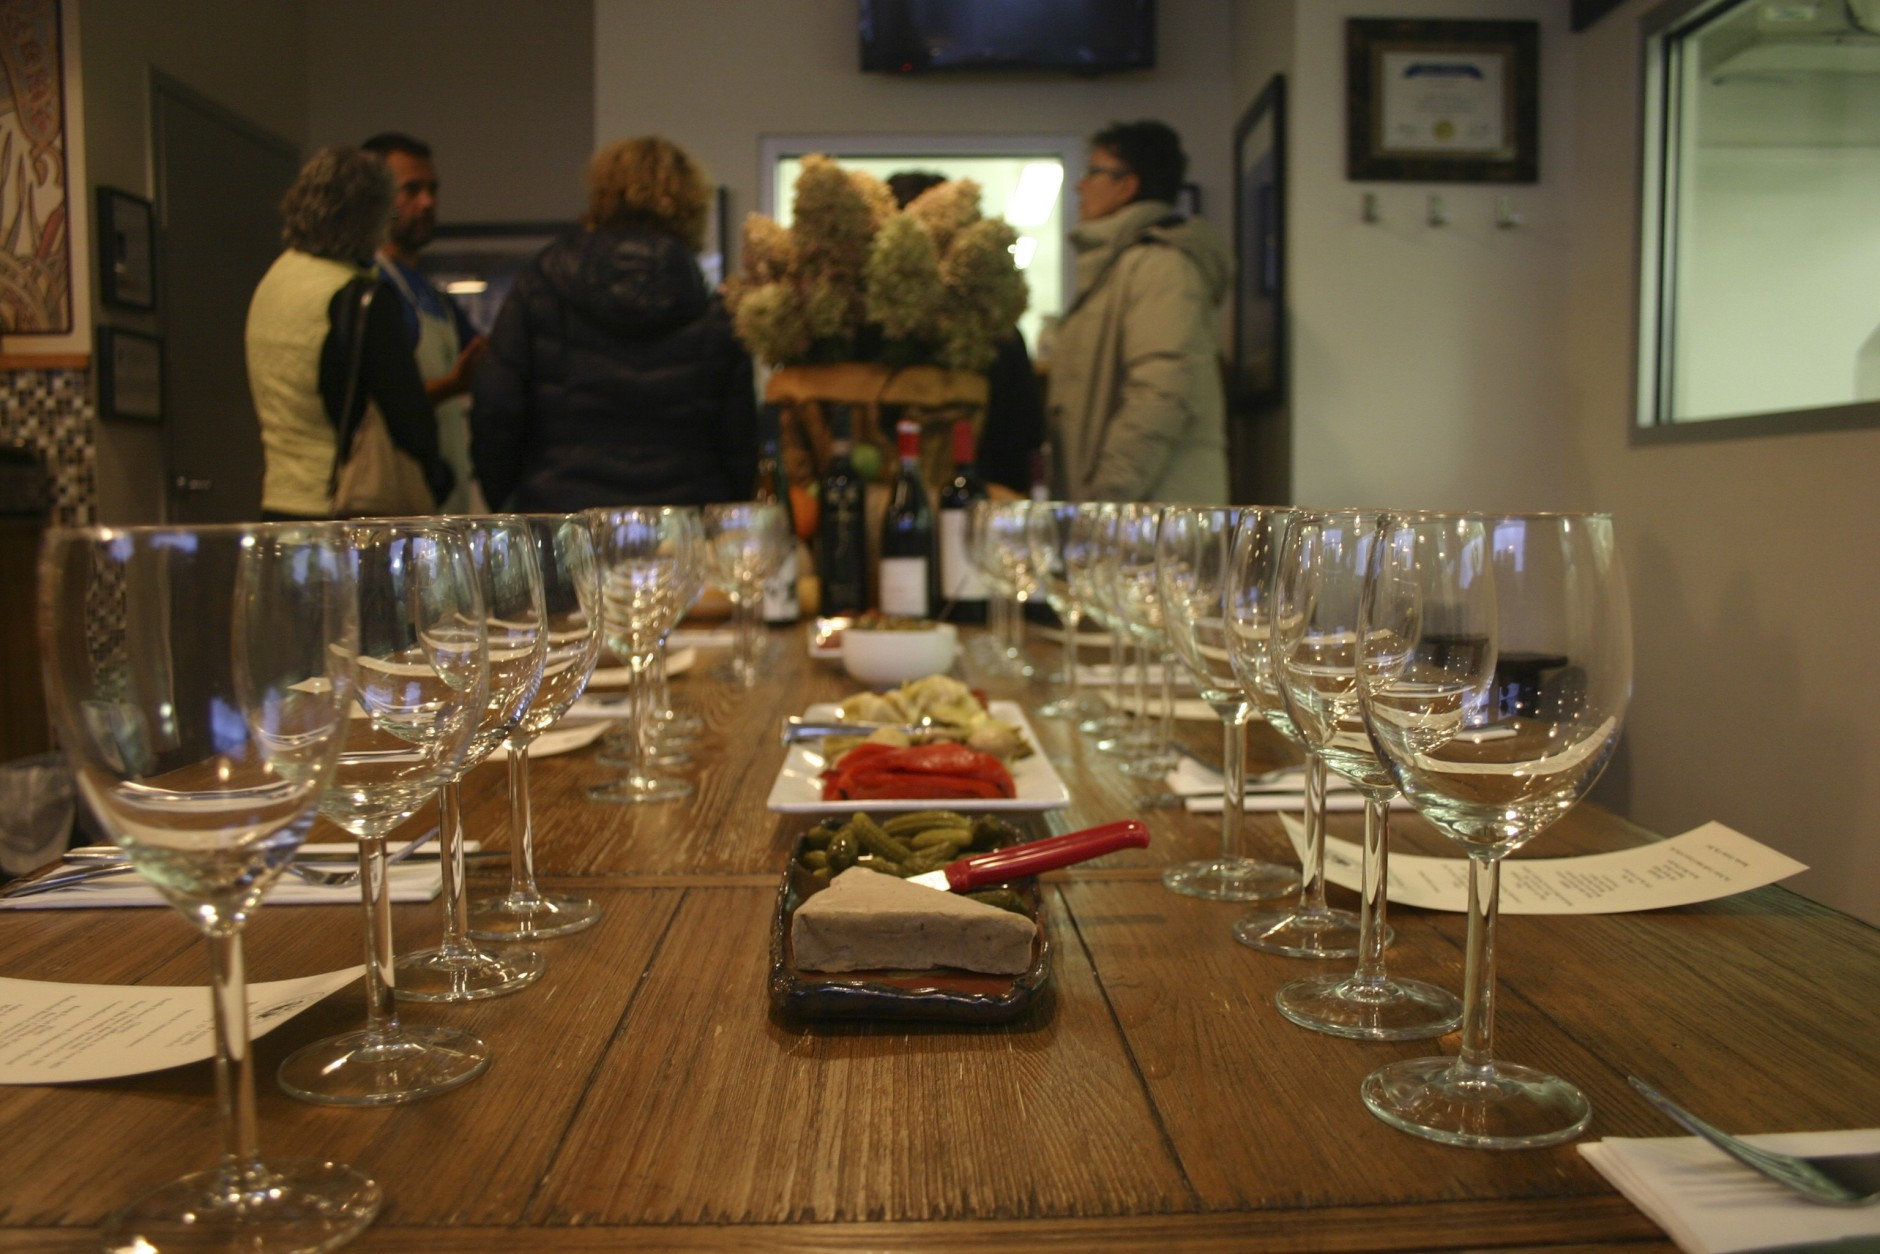 Soon, these visitors will sit down to a tasting and Pablo will walk them through the various cheeses and wines and suggest pairings for dining at home. (WTOP/Kate Ryan)